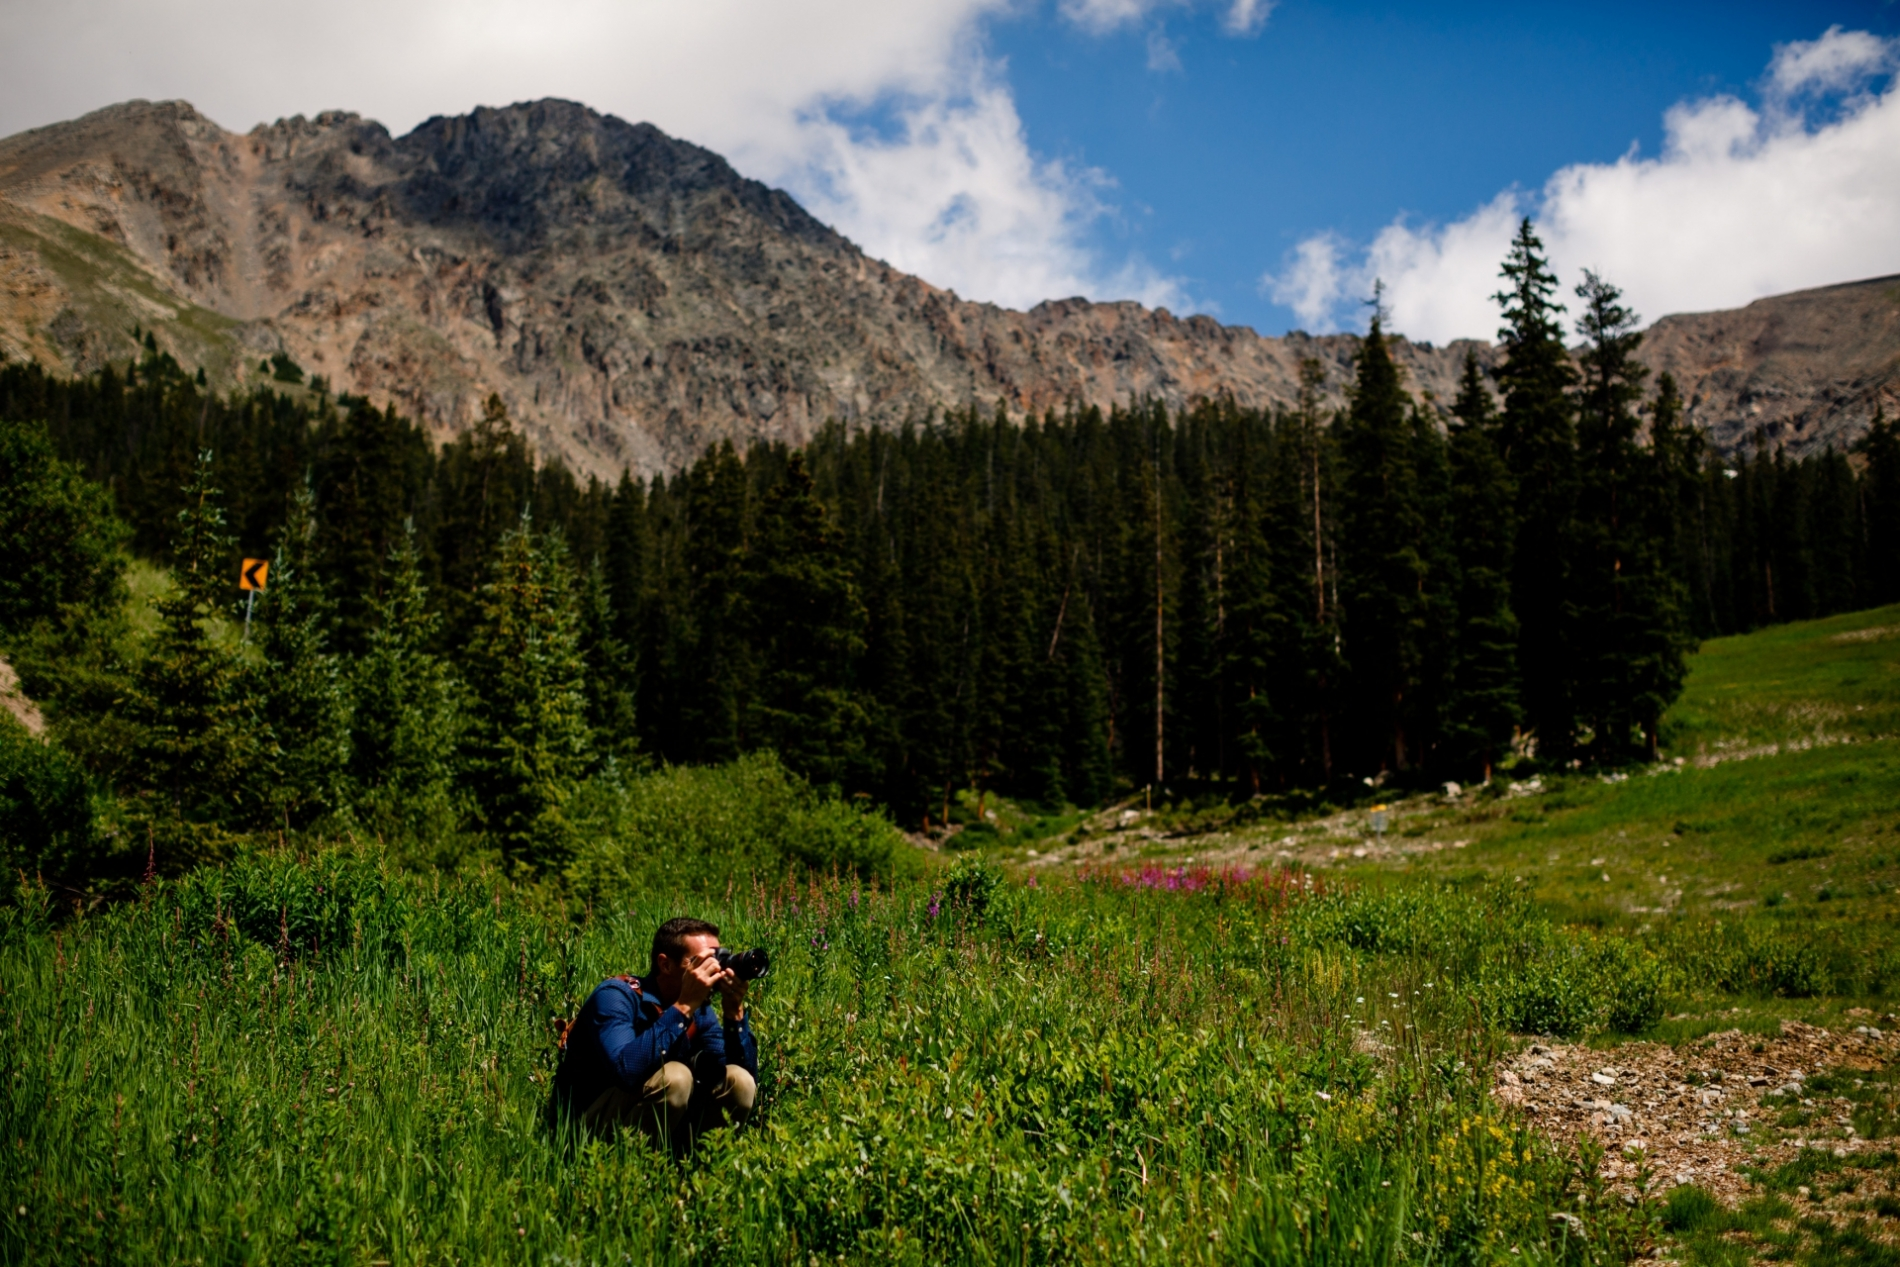 Colorado wedding photographer at working during an event